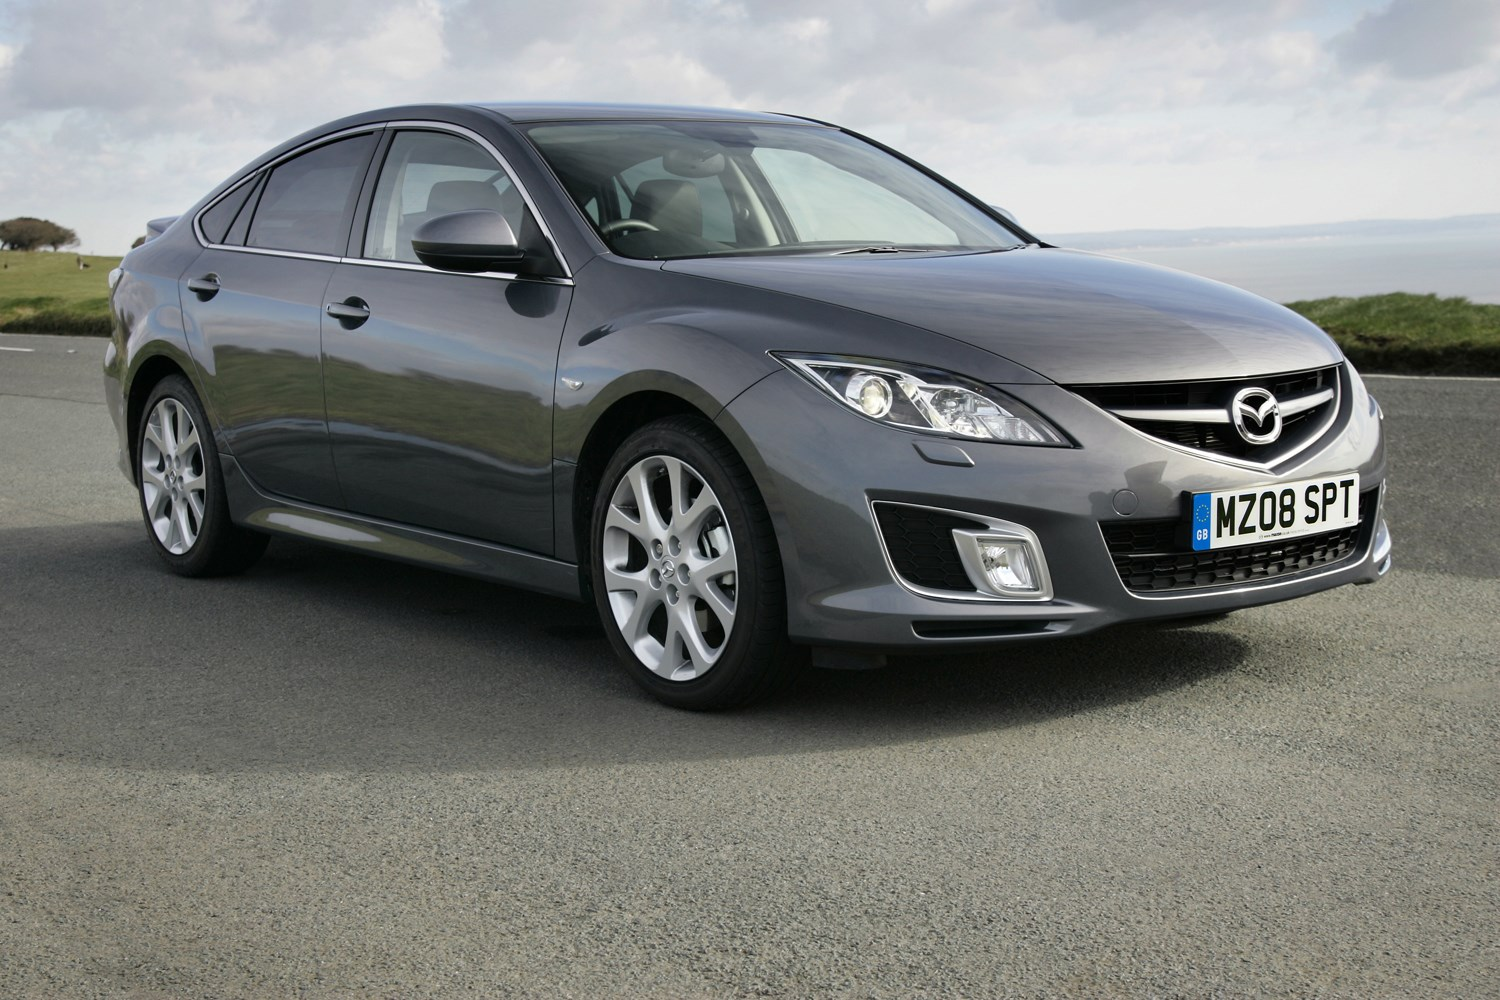 mazda 6 hatchback 2007 2012 photos parkers. Black Bedroom Furniture Sets. Home Design Ideas